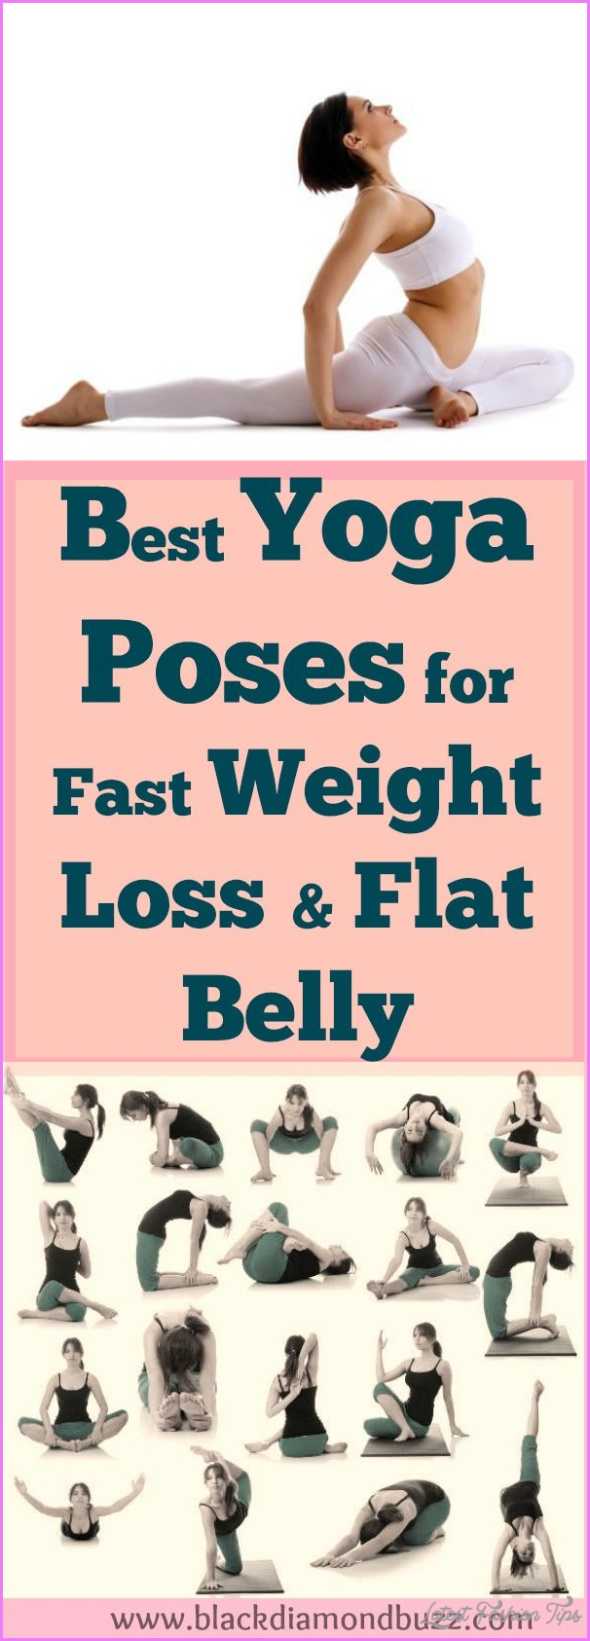 Yoga Exercise For Weight Loss _5.jpg